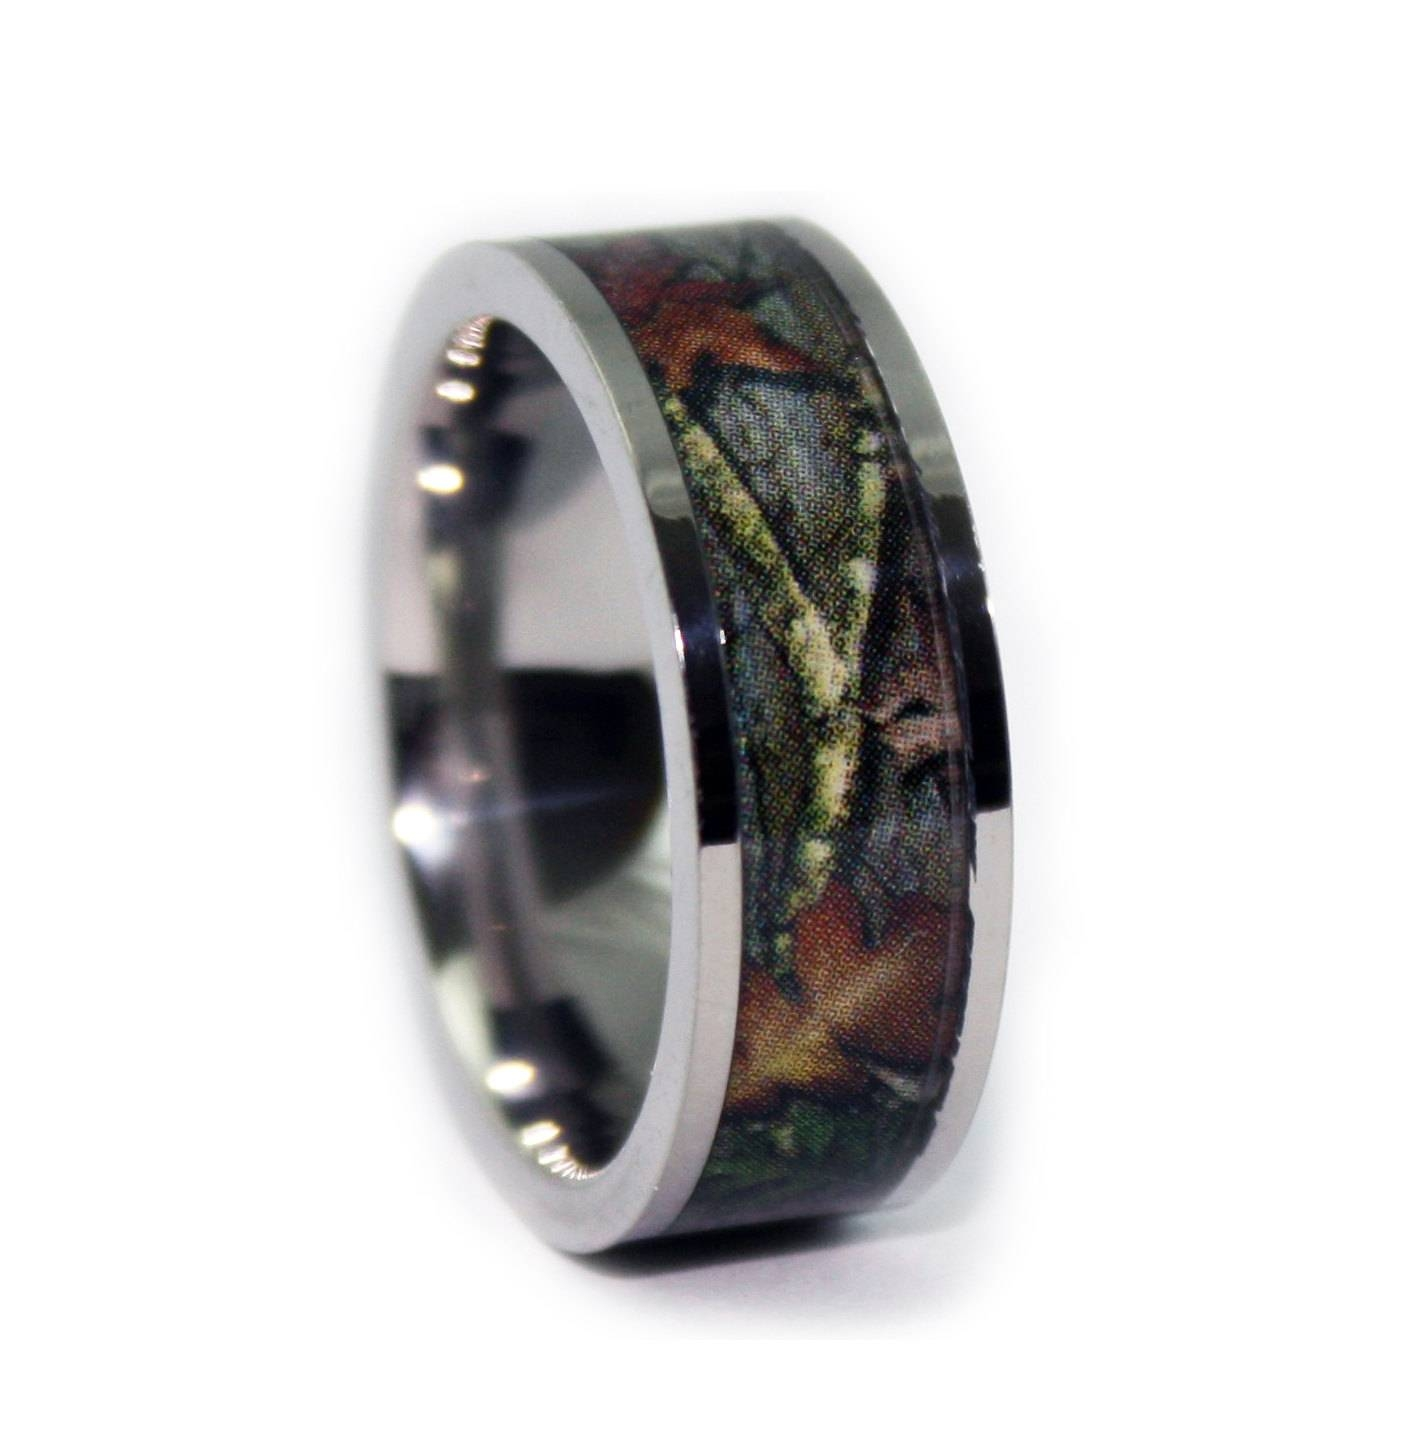 Camo Wedding Ringsone Camo Flat Titanium Mens Wedding Intended For Titanium Camo Wedding Rings (View 5 of 15)